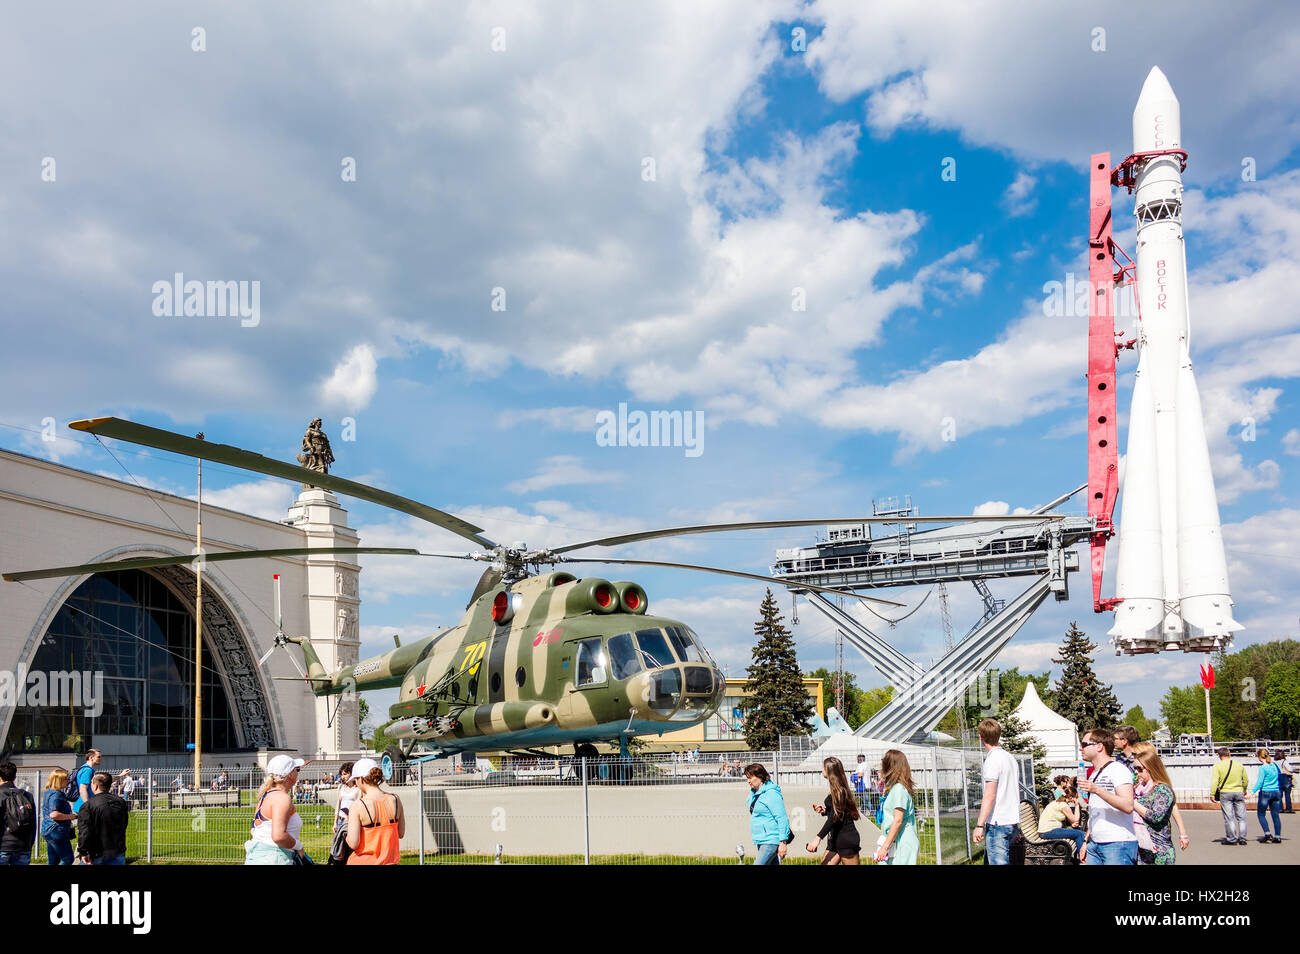 MOSCOW - MAY 8, 2016: People near the military transport helicopter Mil Mi-8T and Vostok rocket in VDNKh park. It - Stock Image